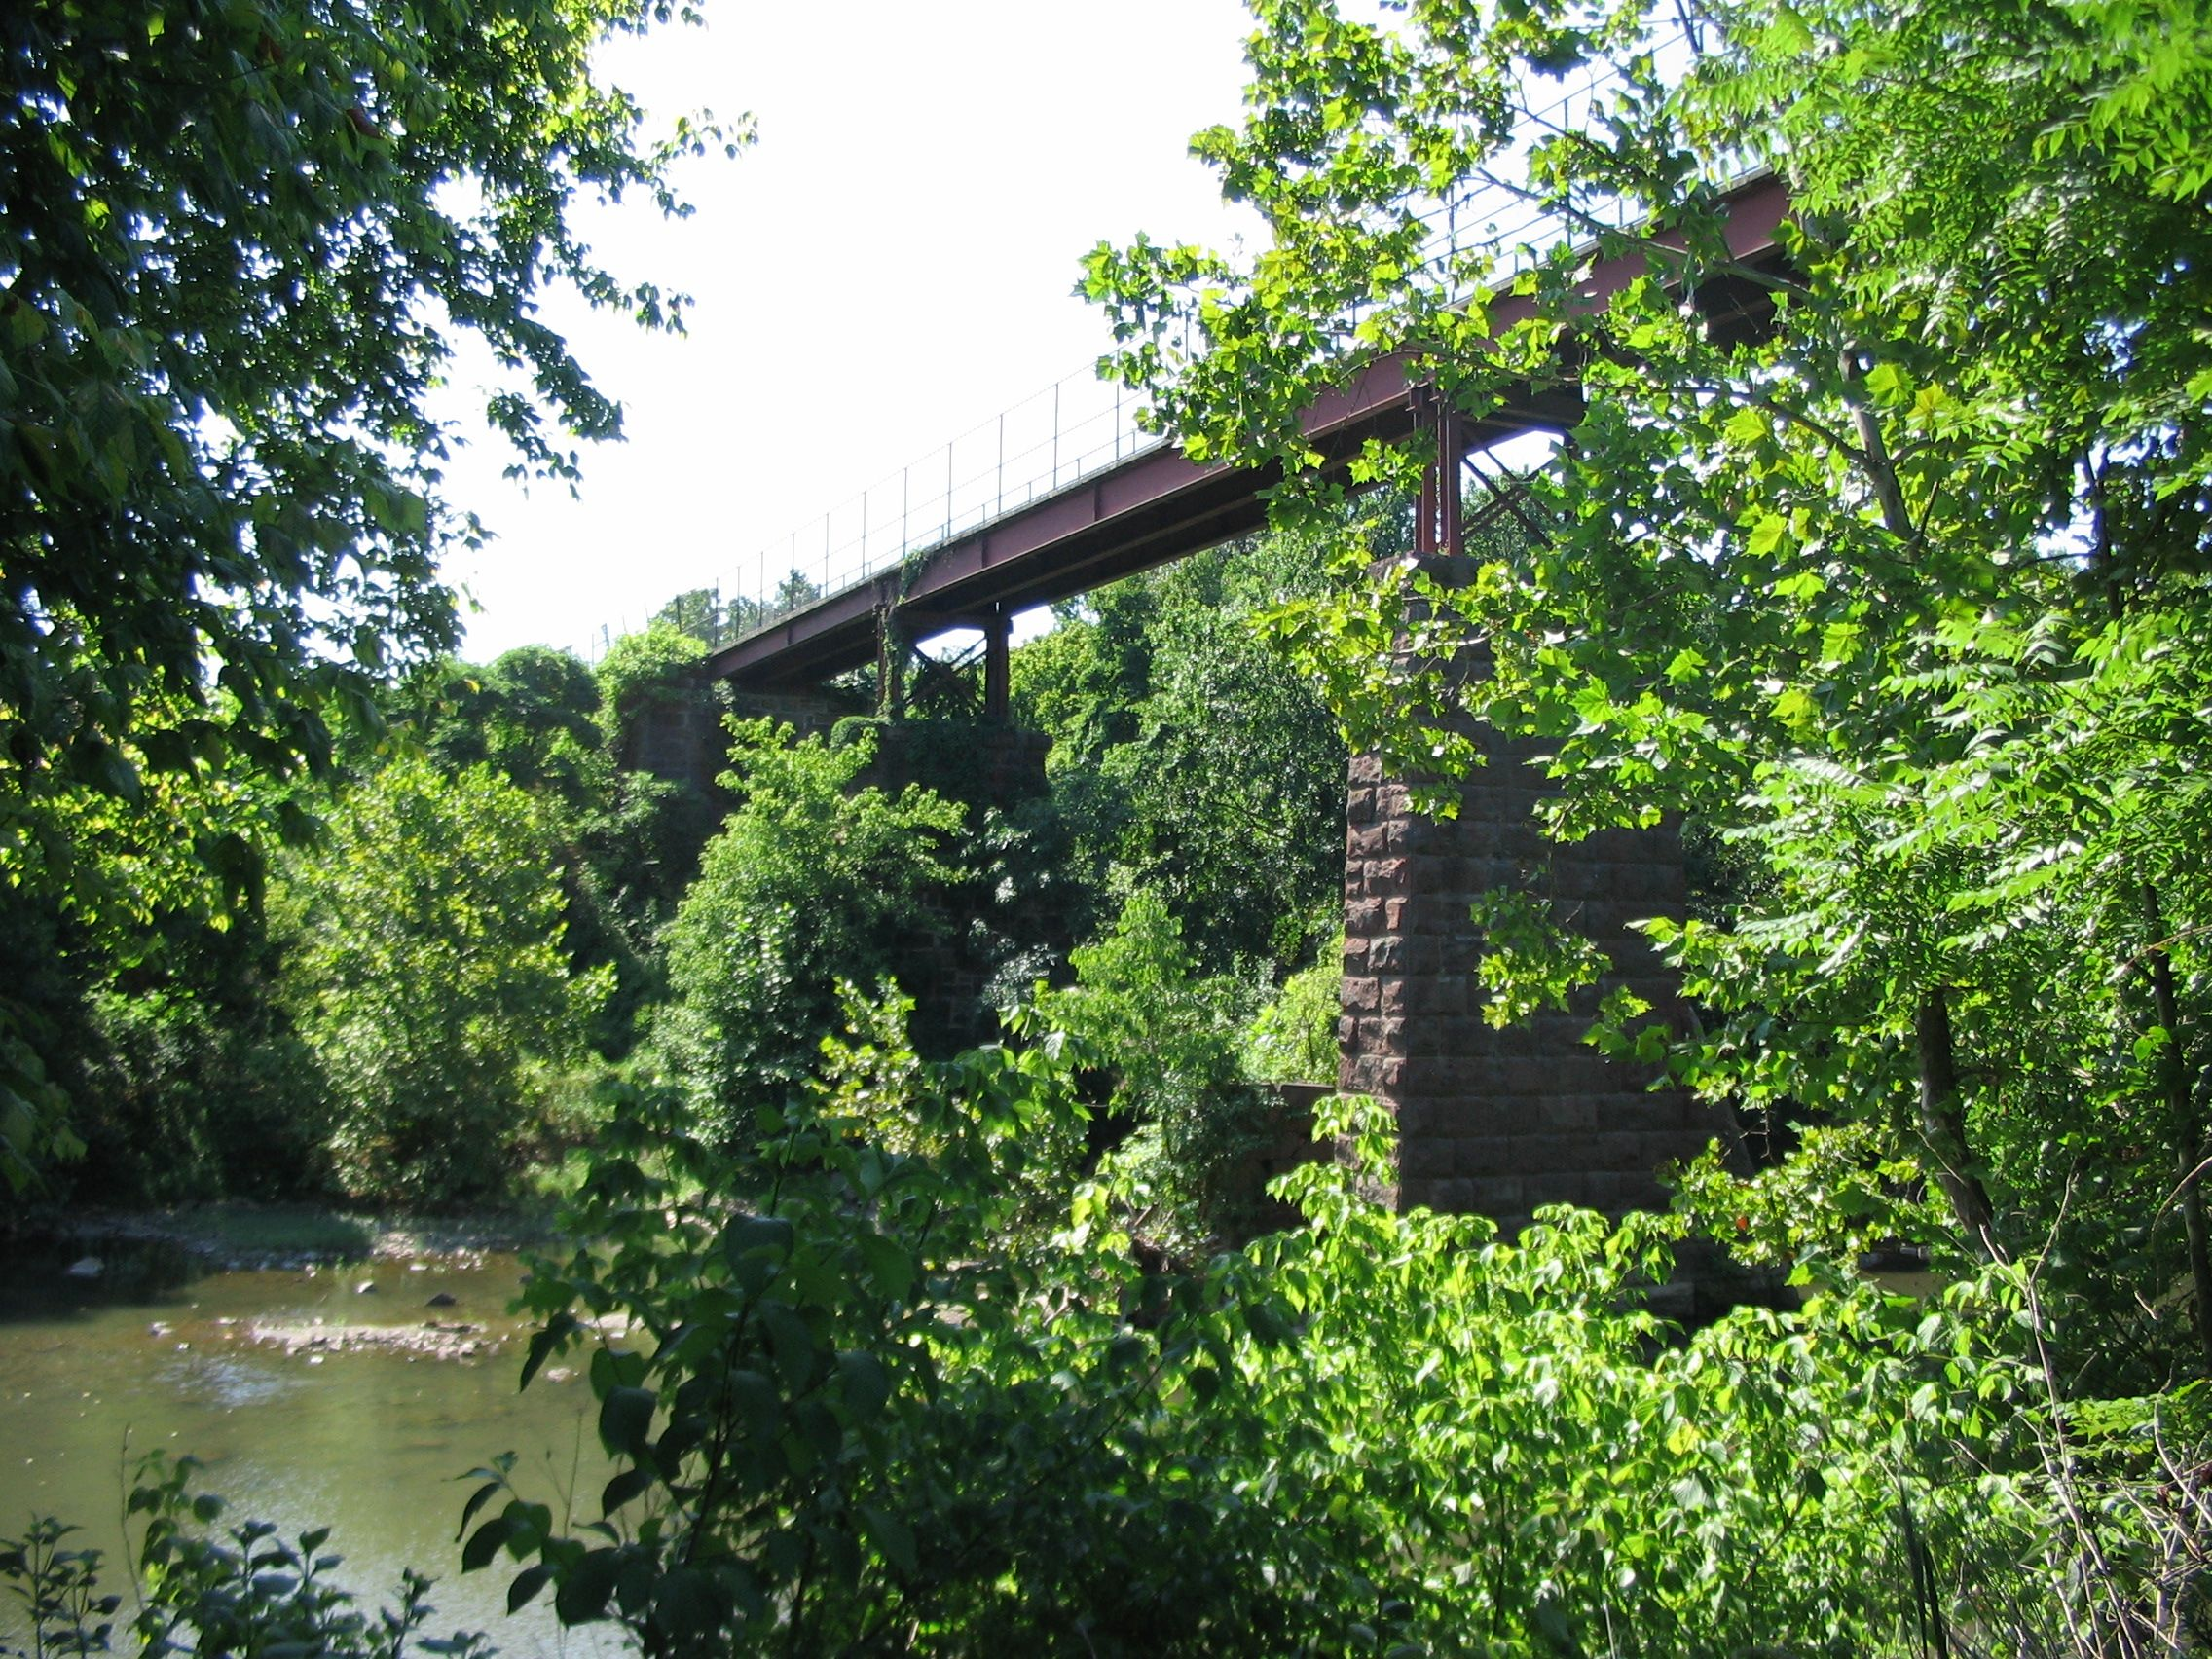 Goose Creek Bridge